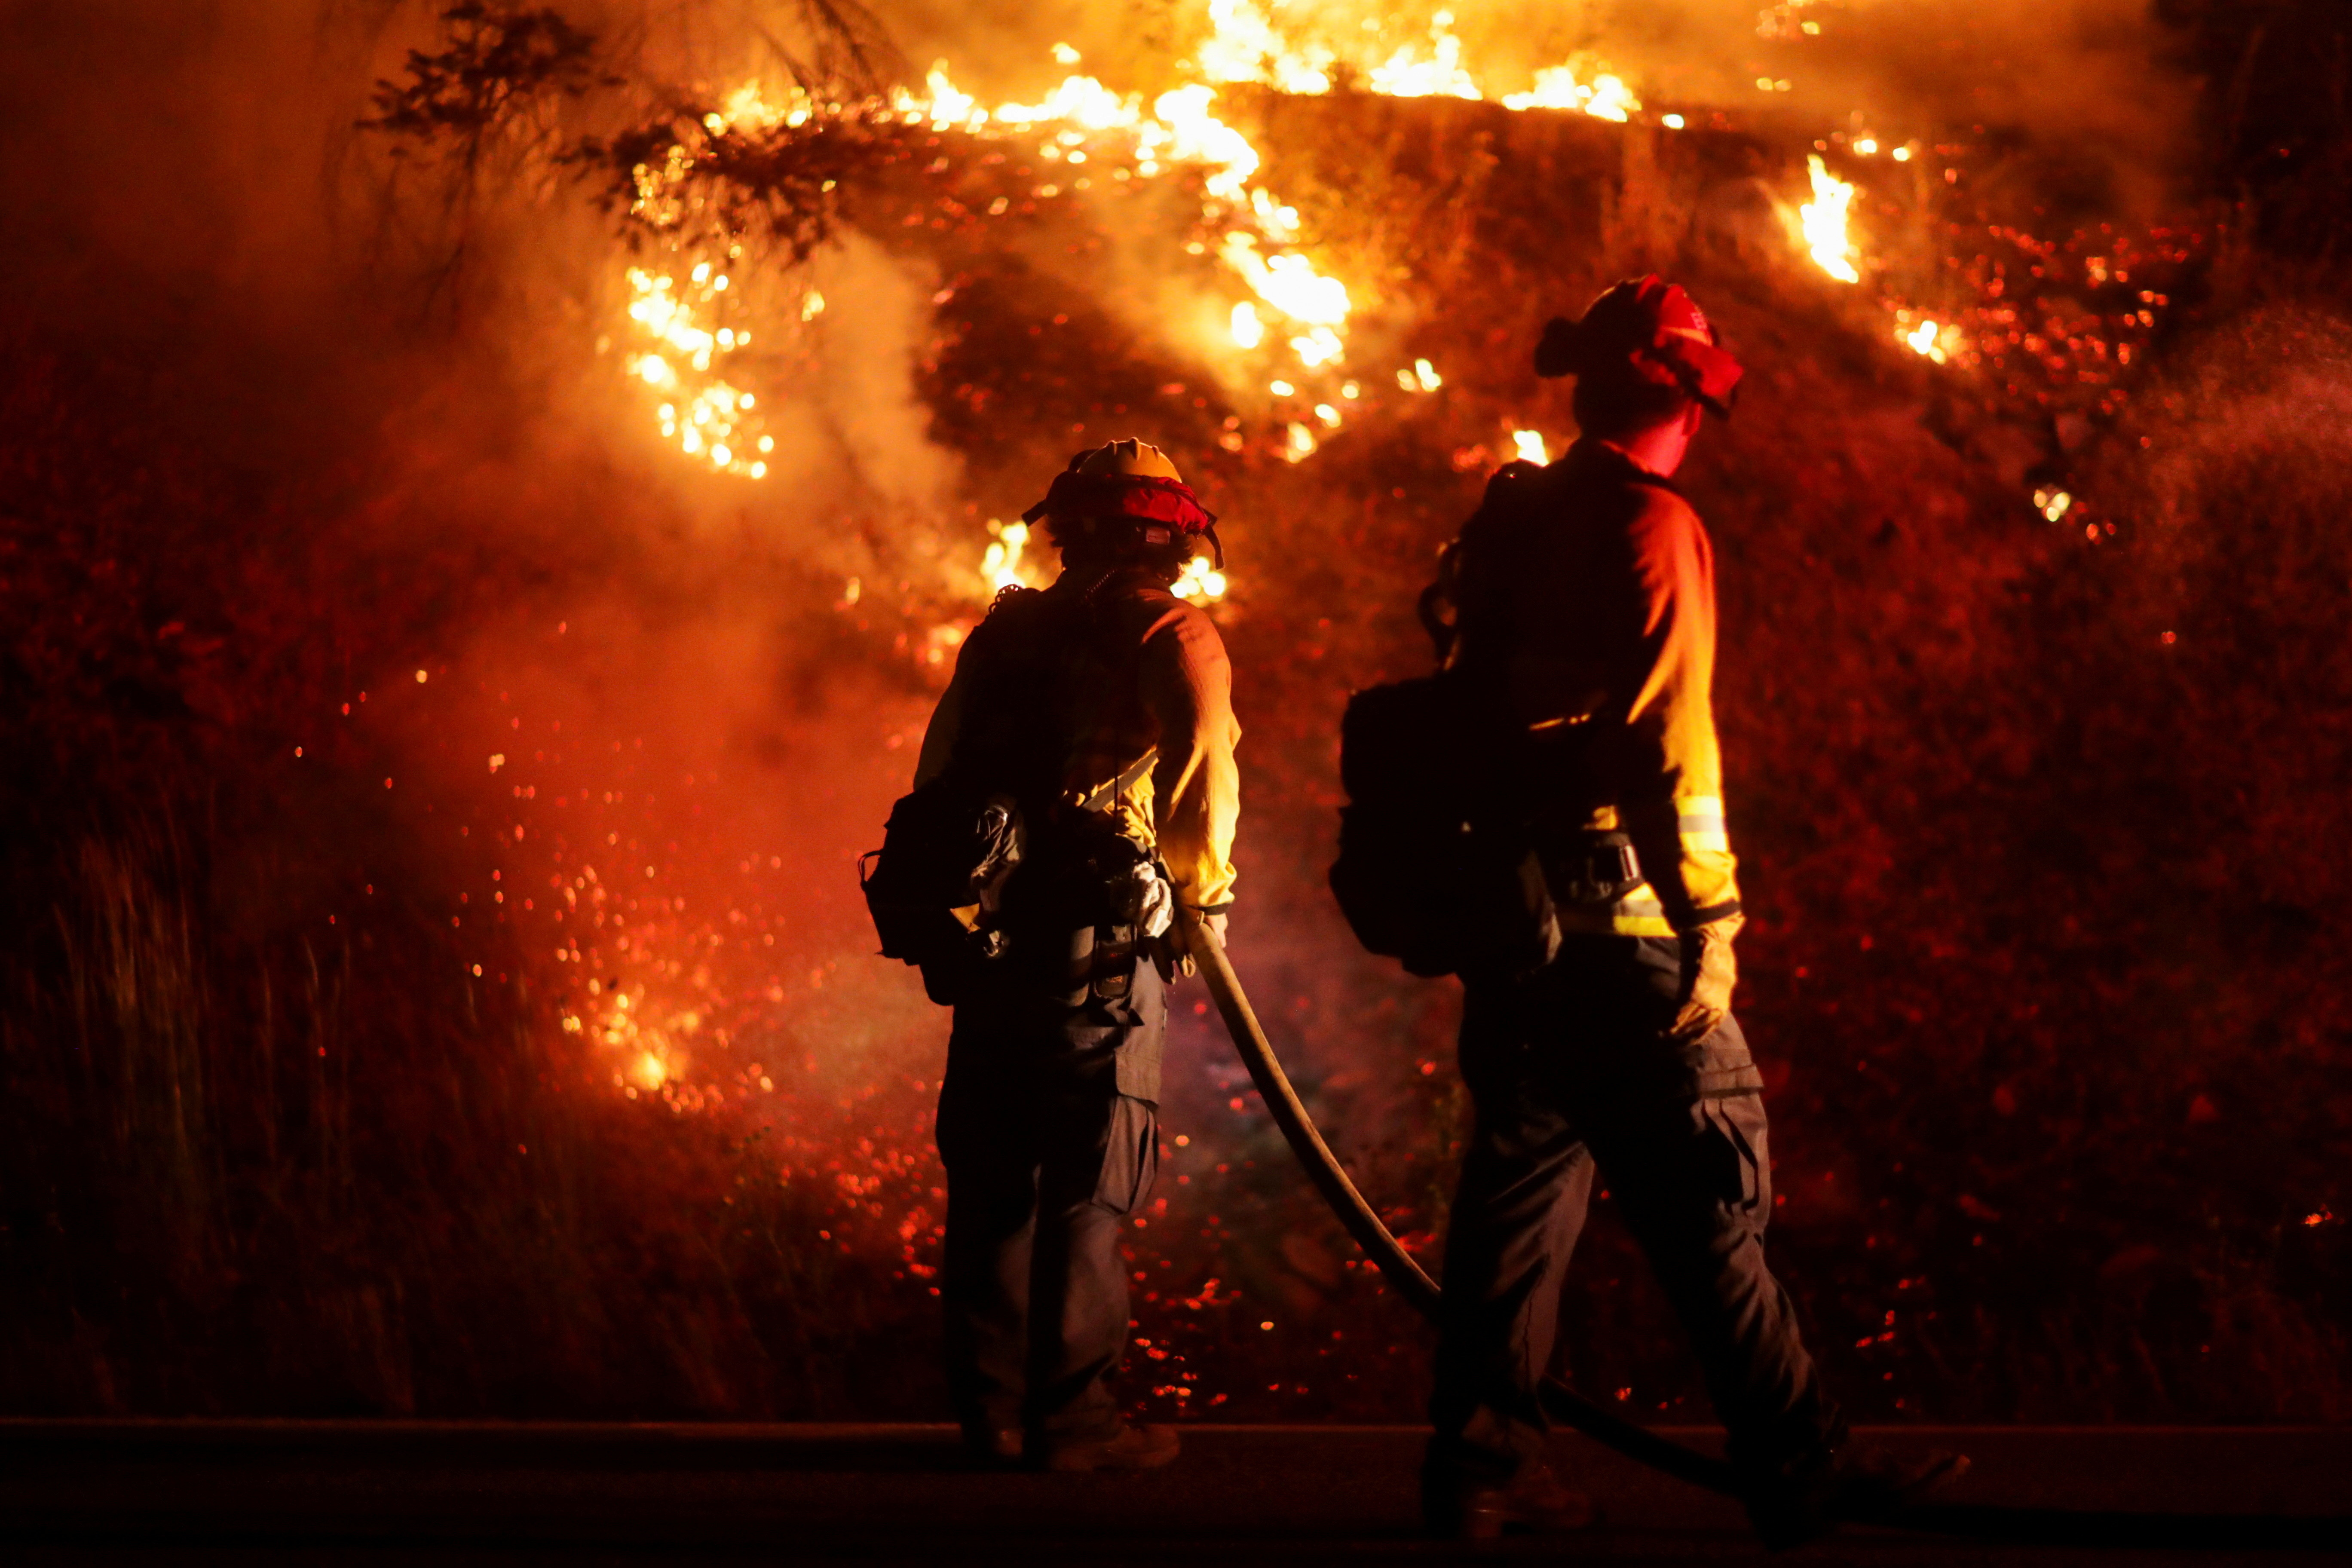 Firefighters extinguish spot fires along Route 89 Dixie Fire in Moccasin, now over 200,000 acres, California, U.S., July 28, 2021